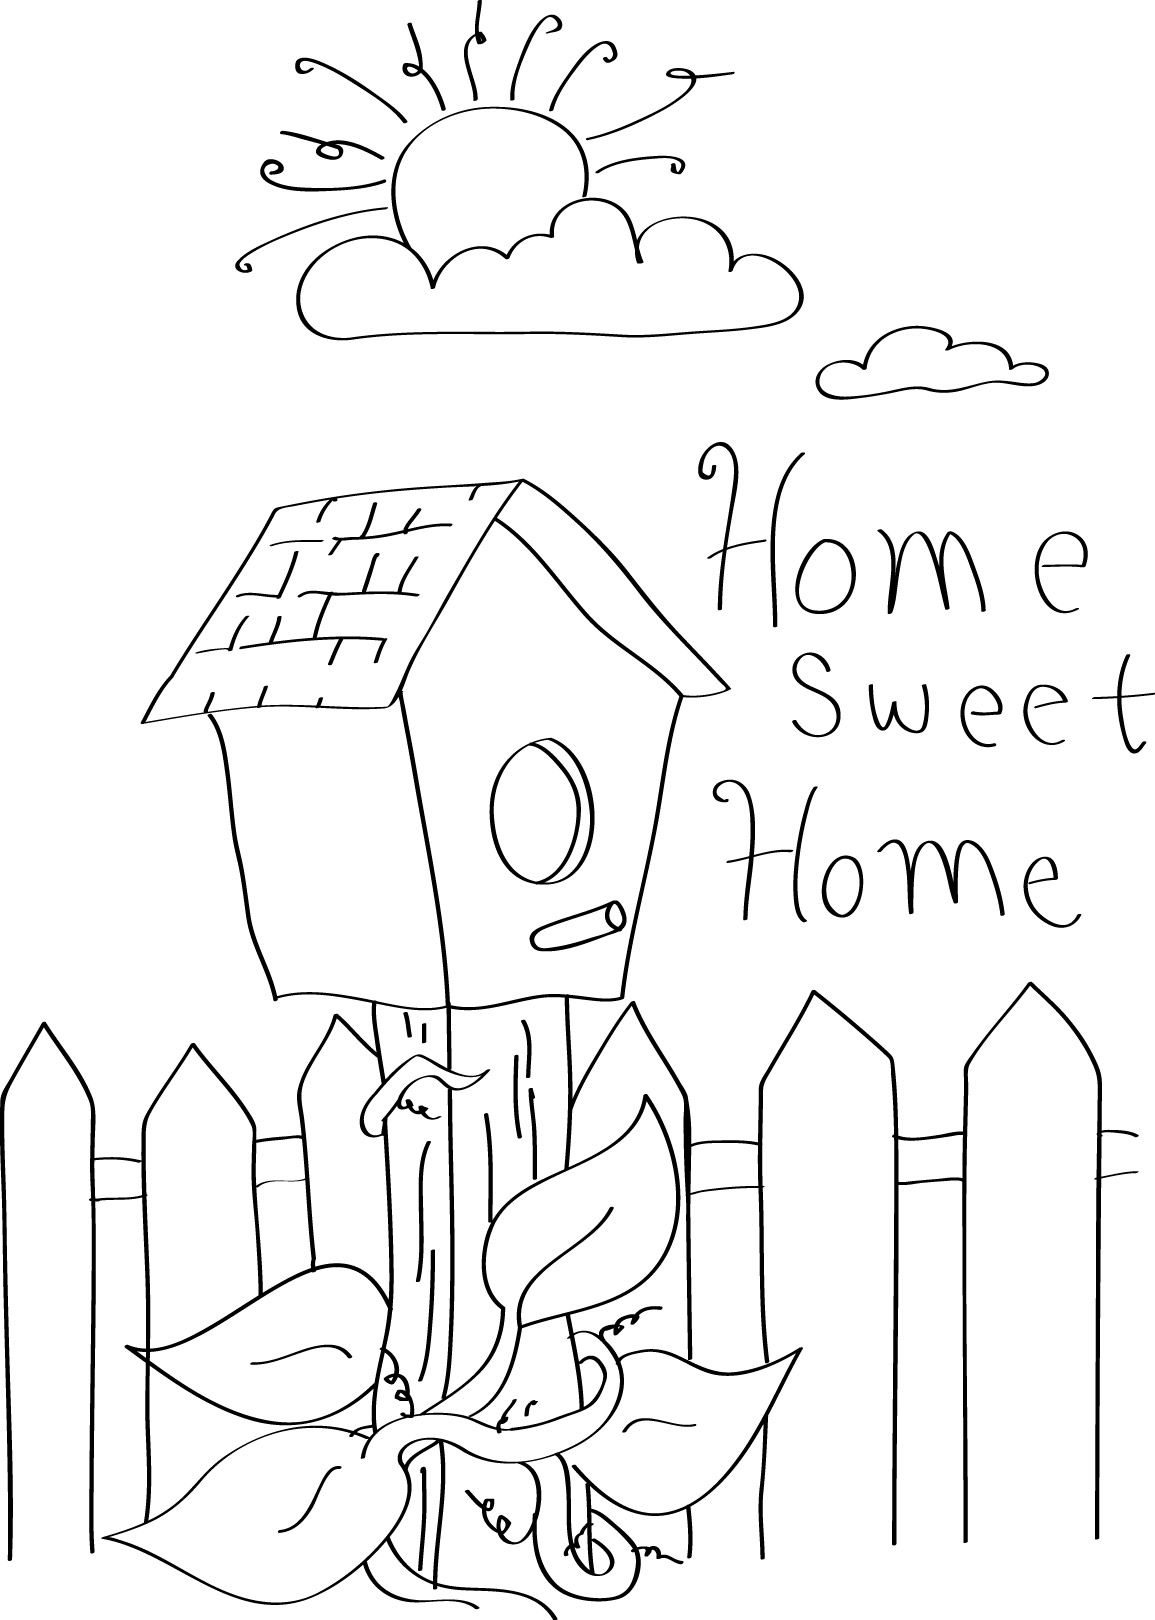 Home sweet home clipart vector stock Home Sweet Home Clipart - Cliparts and Others Art Inspiration vector stock